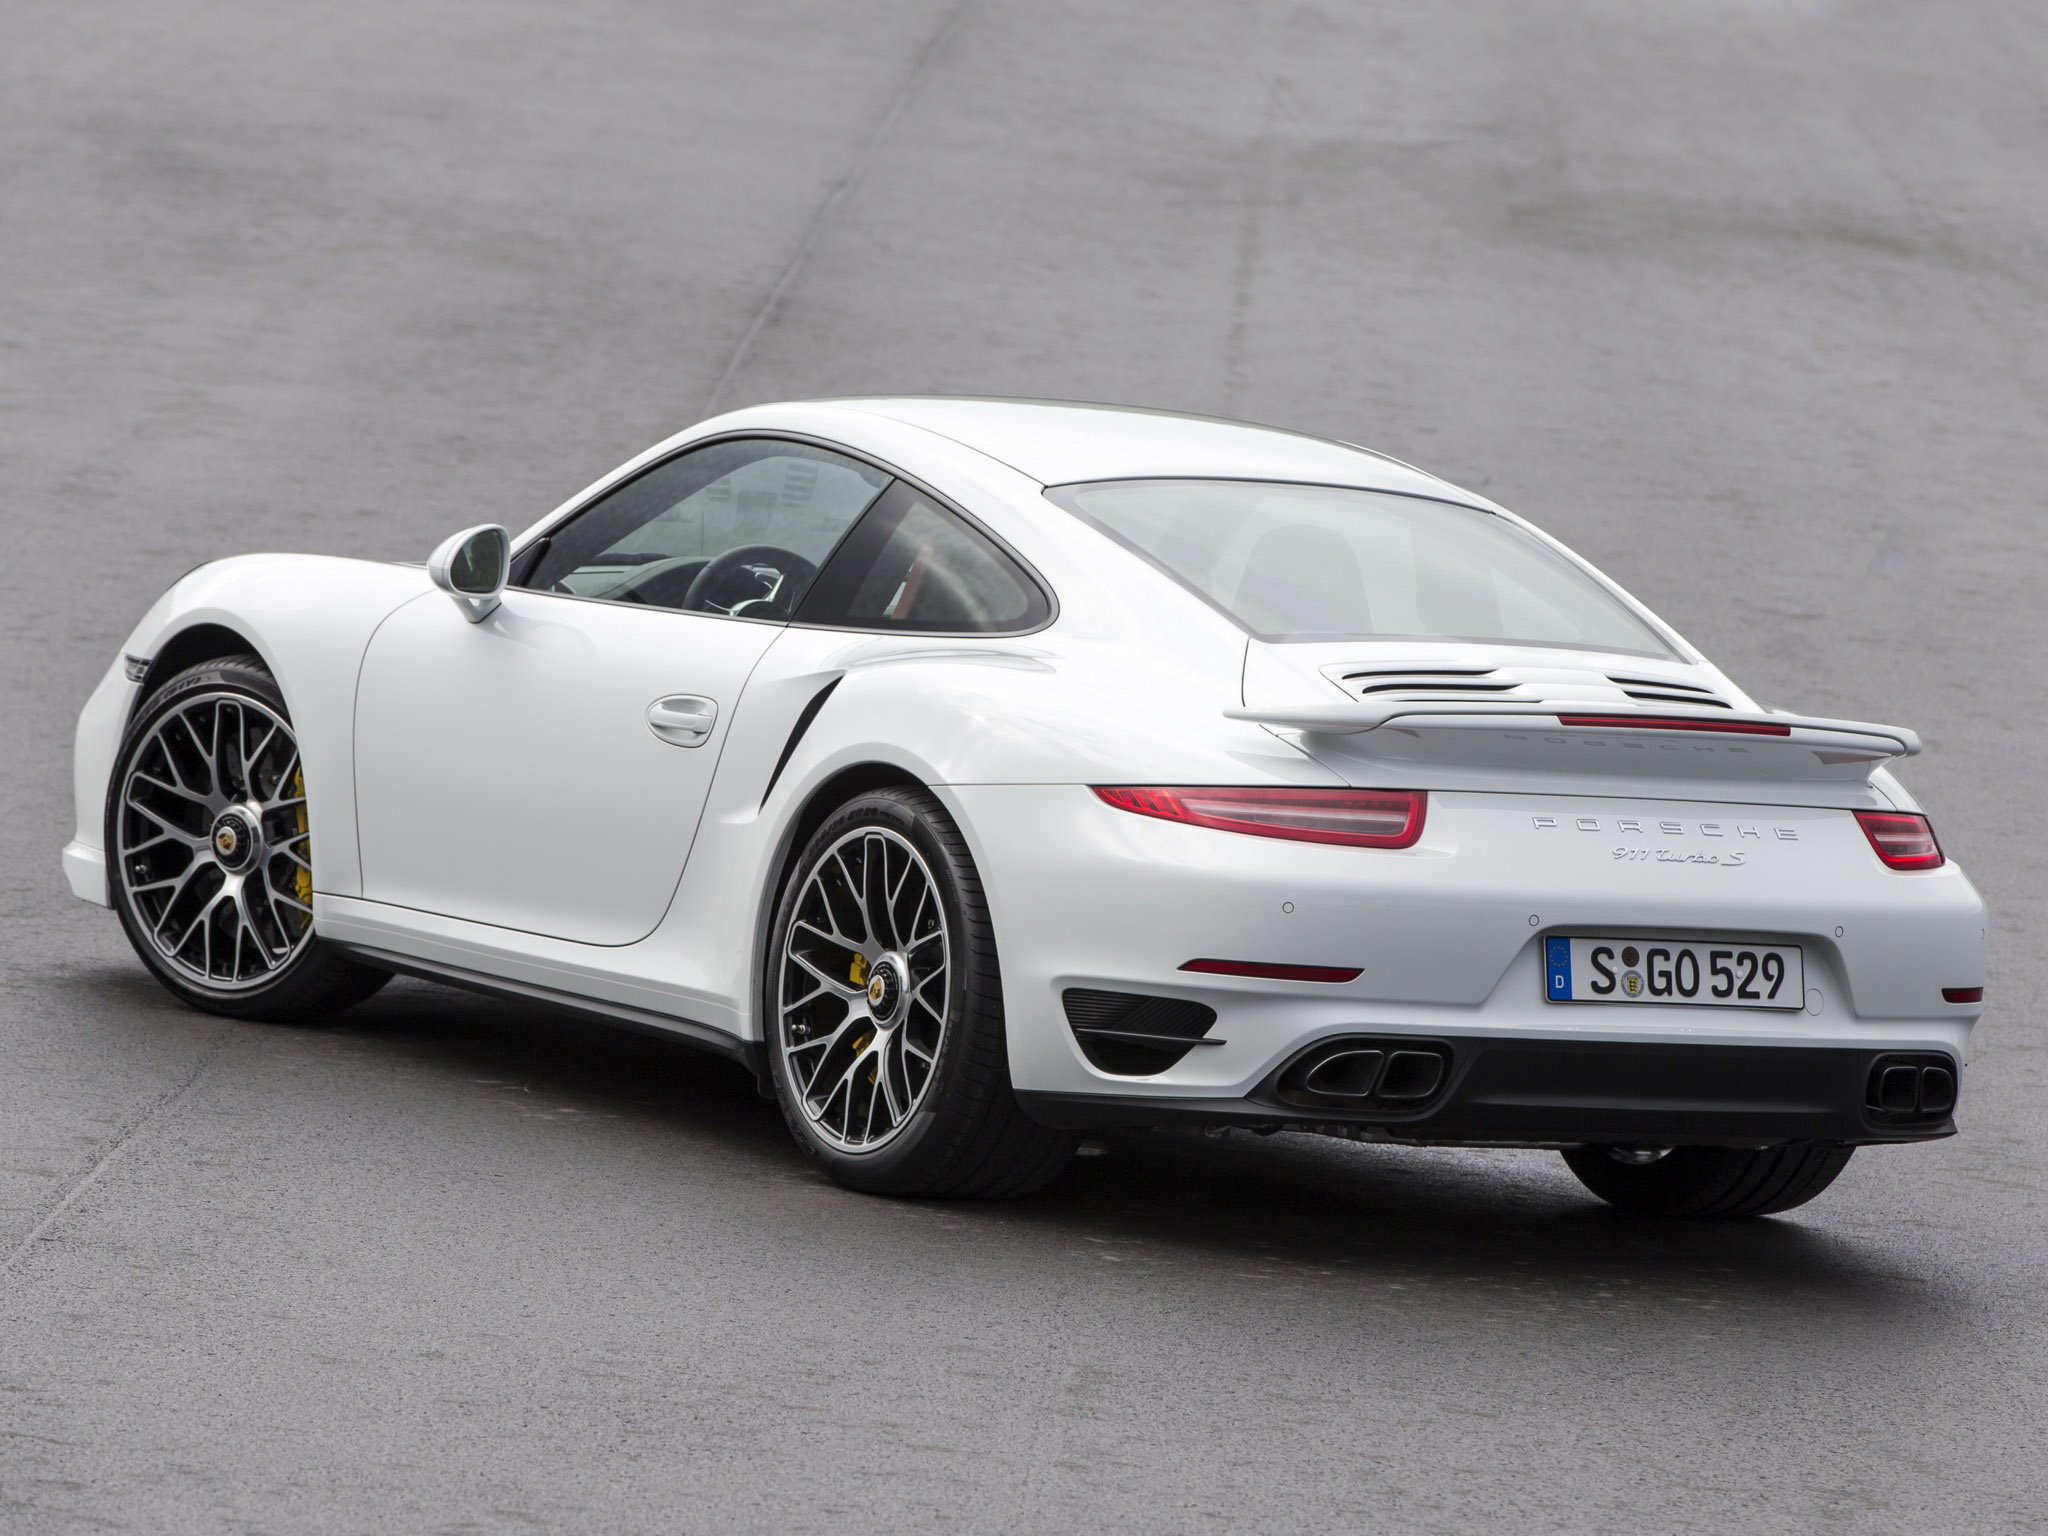 2013 porsche 911 turbo s 991 h wallpaper 2048x1536 141576 wallpaperup